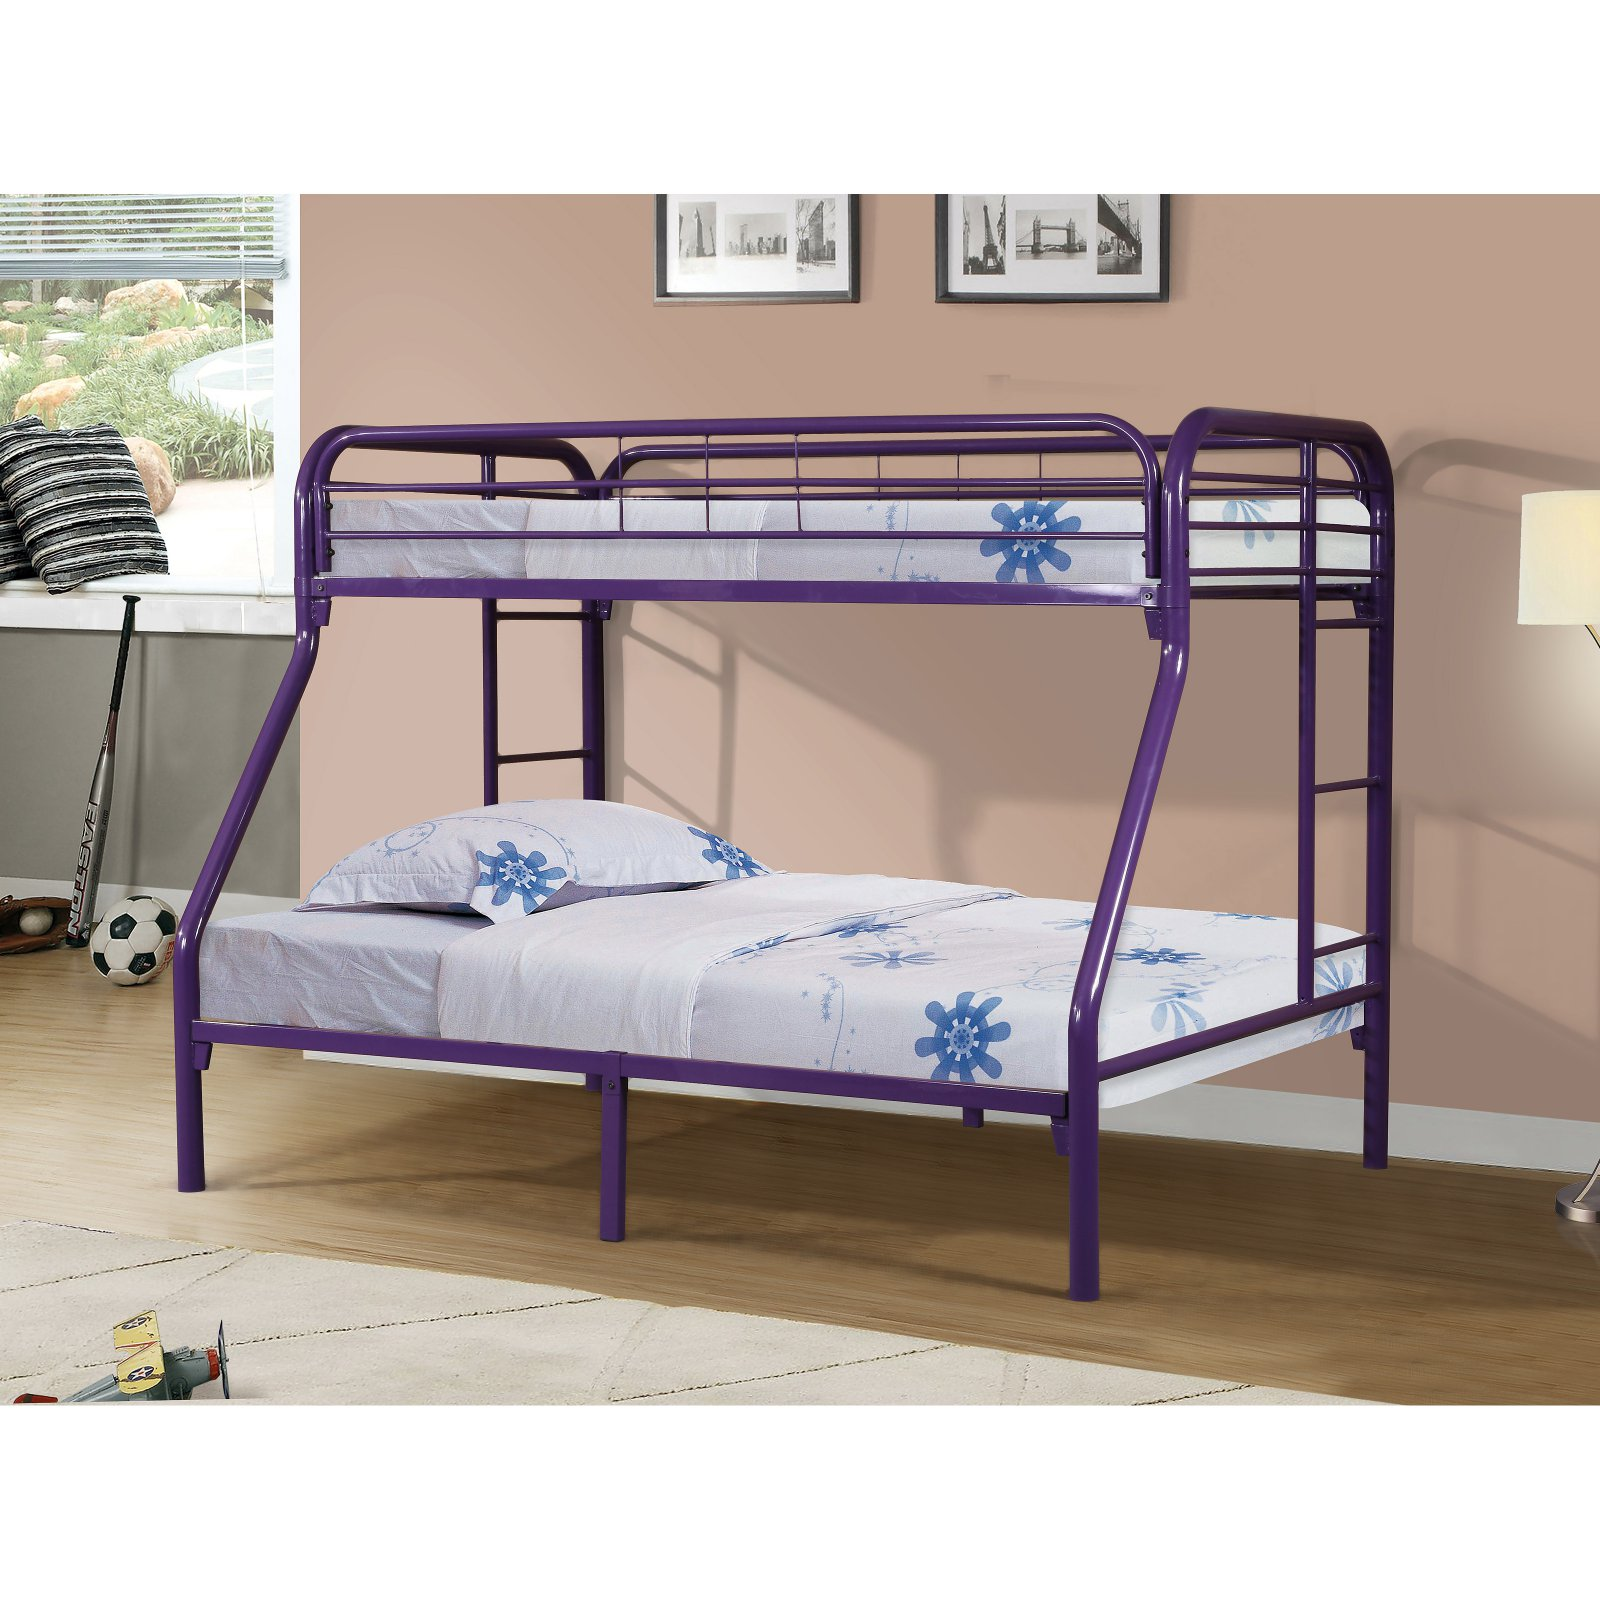 Donco Kids Twin over Full Metal Bunk Bed